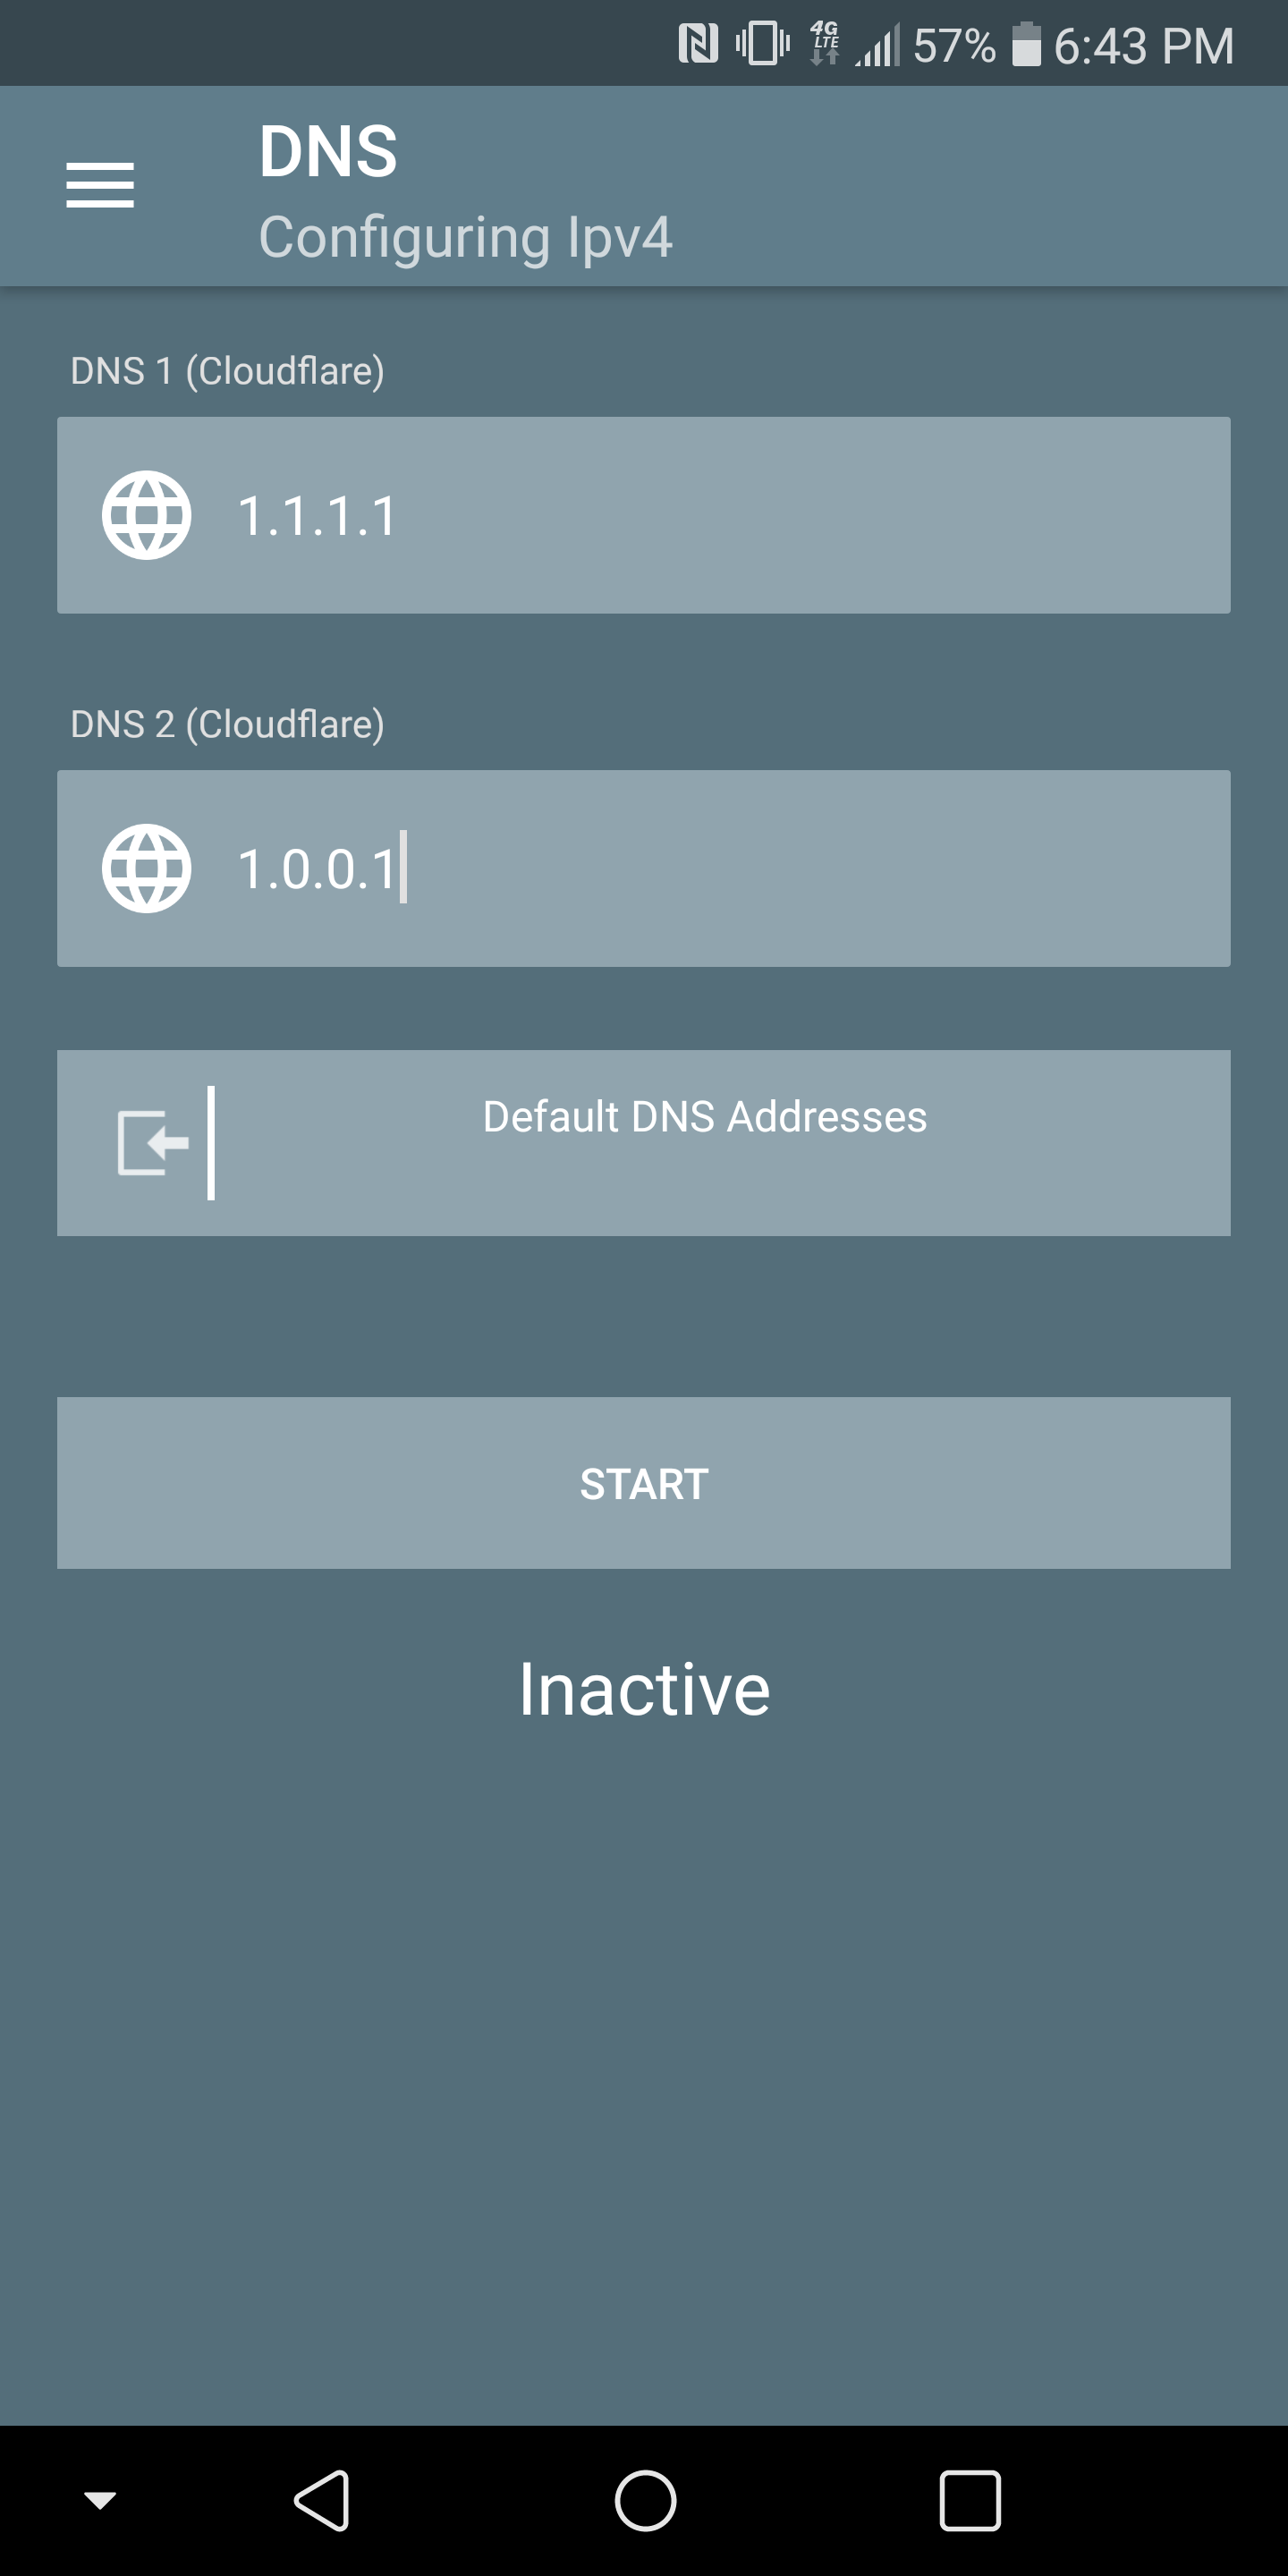 How to make Android use the DNS server of your choice